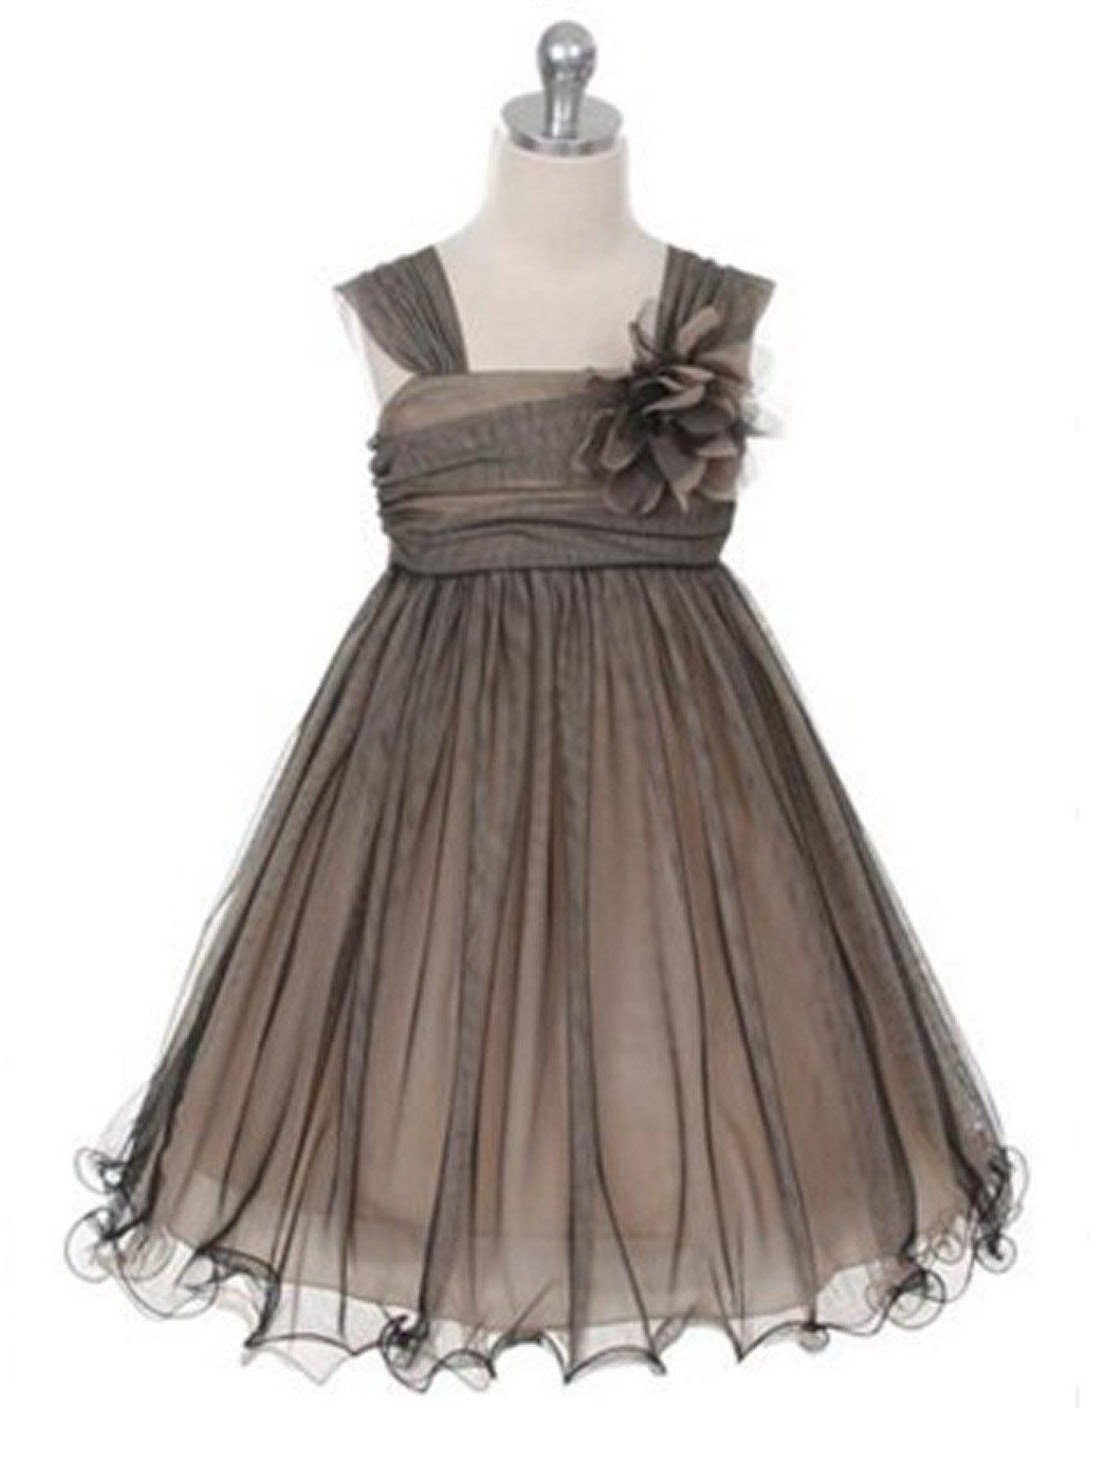 Flower Girl Dress Compelling Mesh and Taffeta Overlay DressBlack & Champ Party Dress Special Occasion Dress